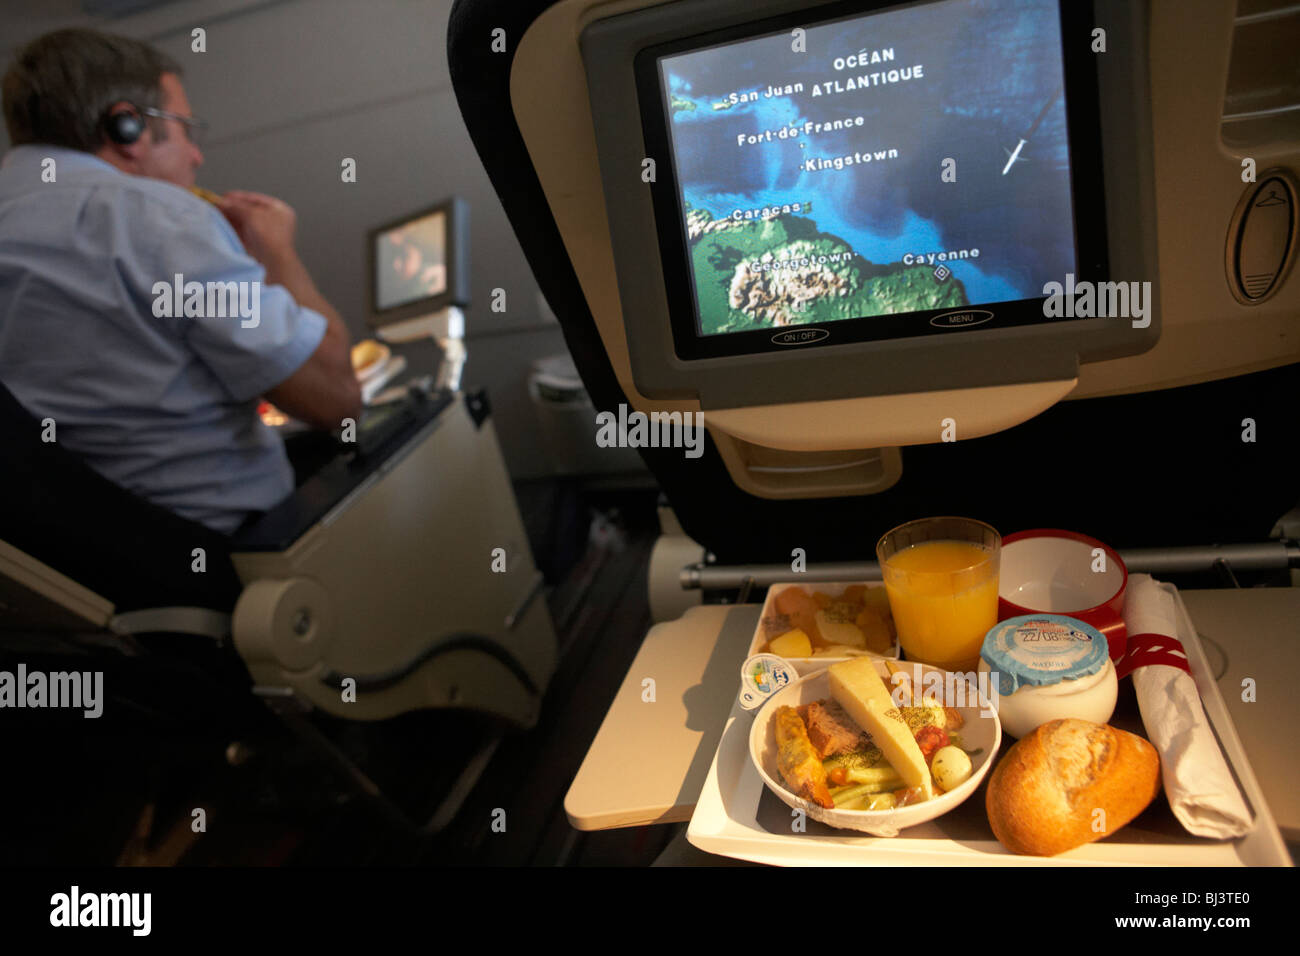 a-man-tucks-in-to-his-in-flight-meal-on-